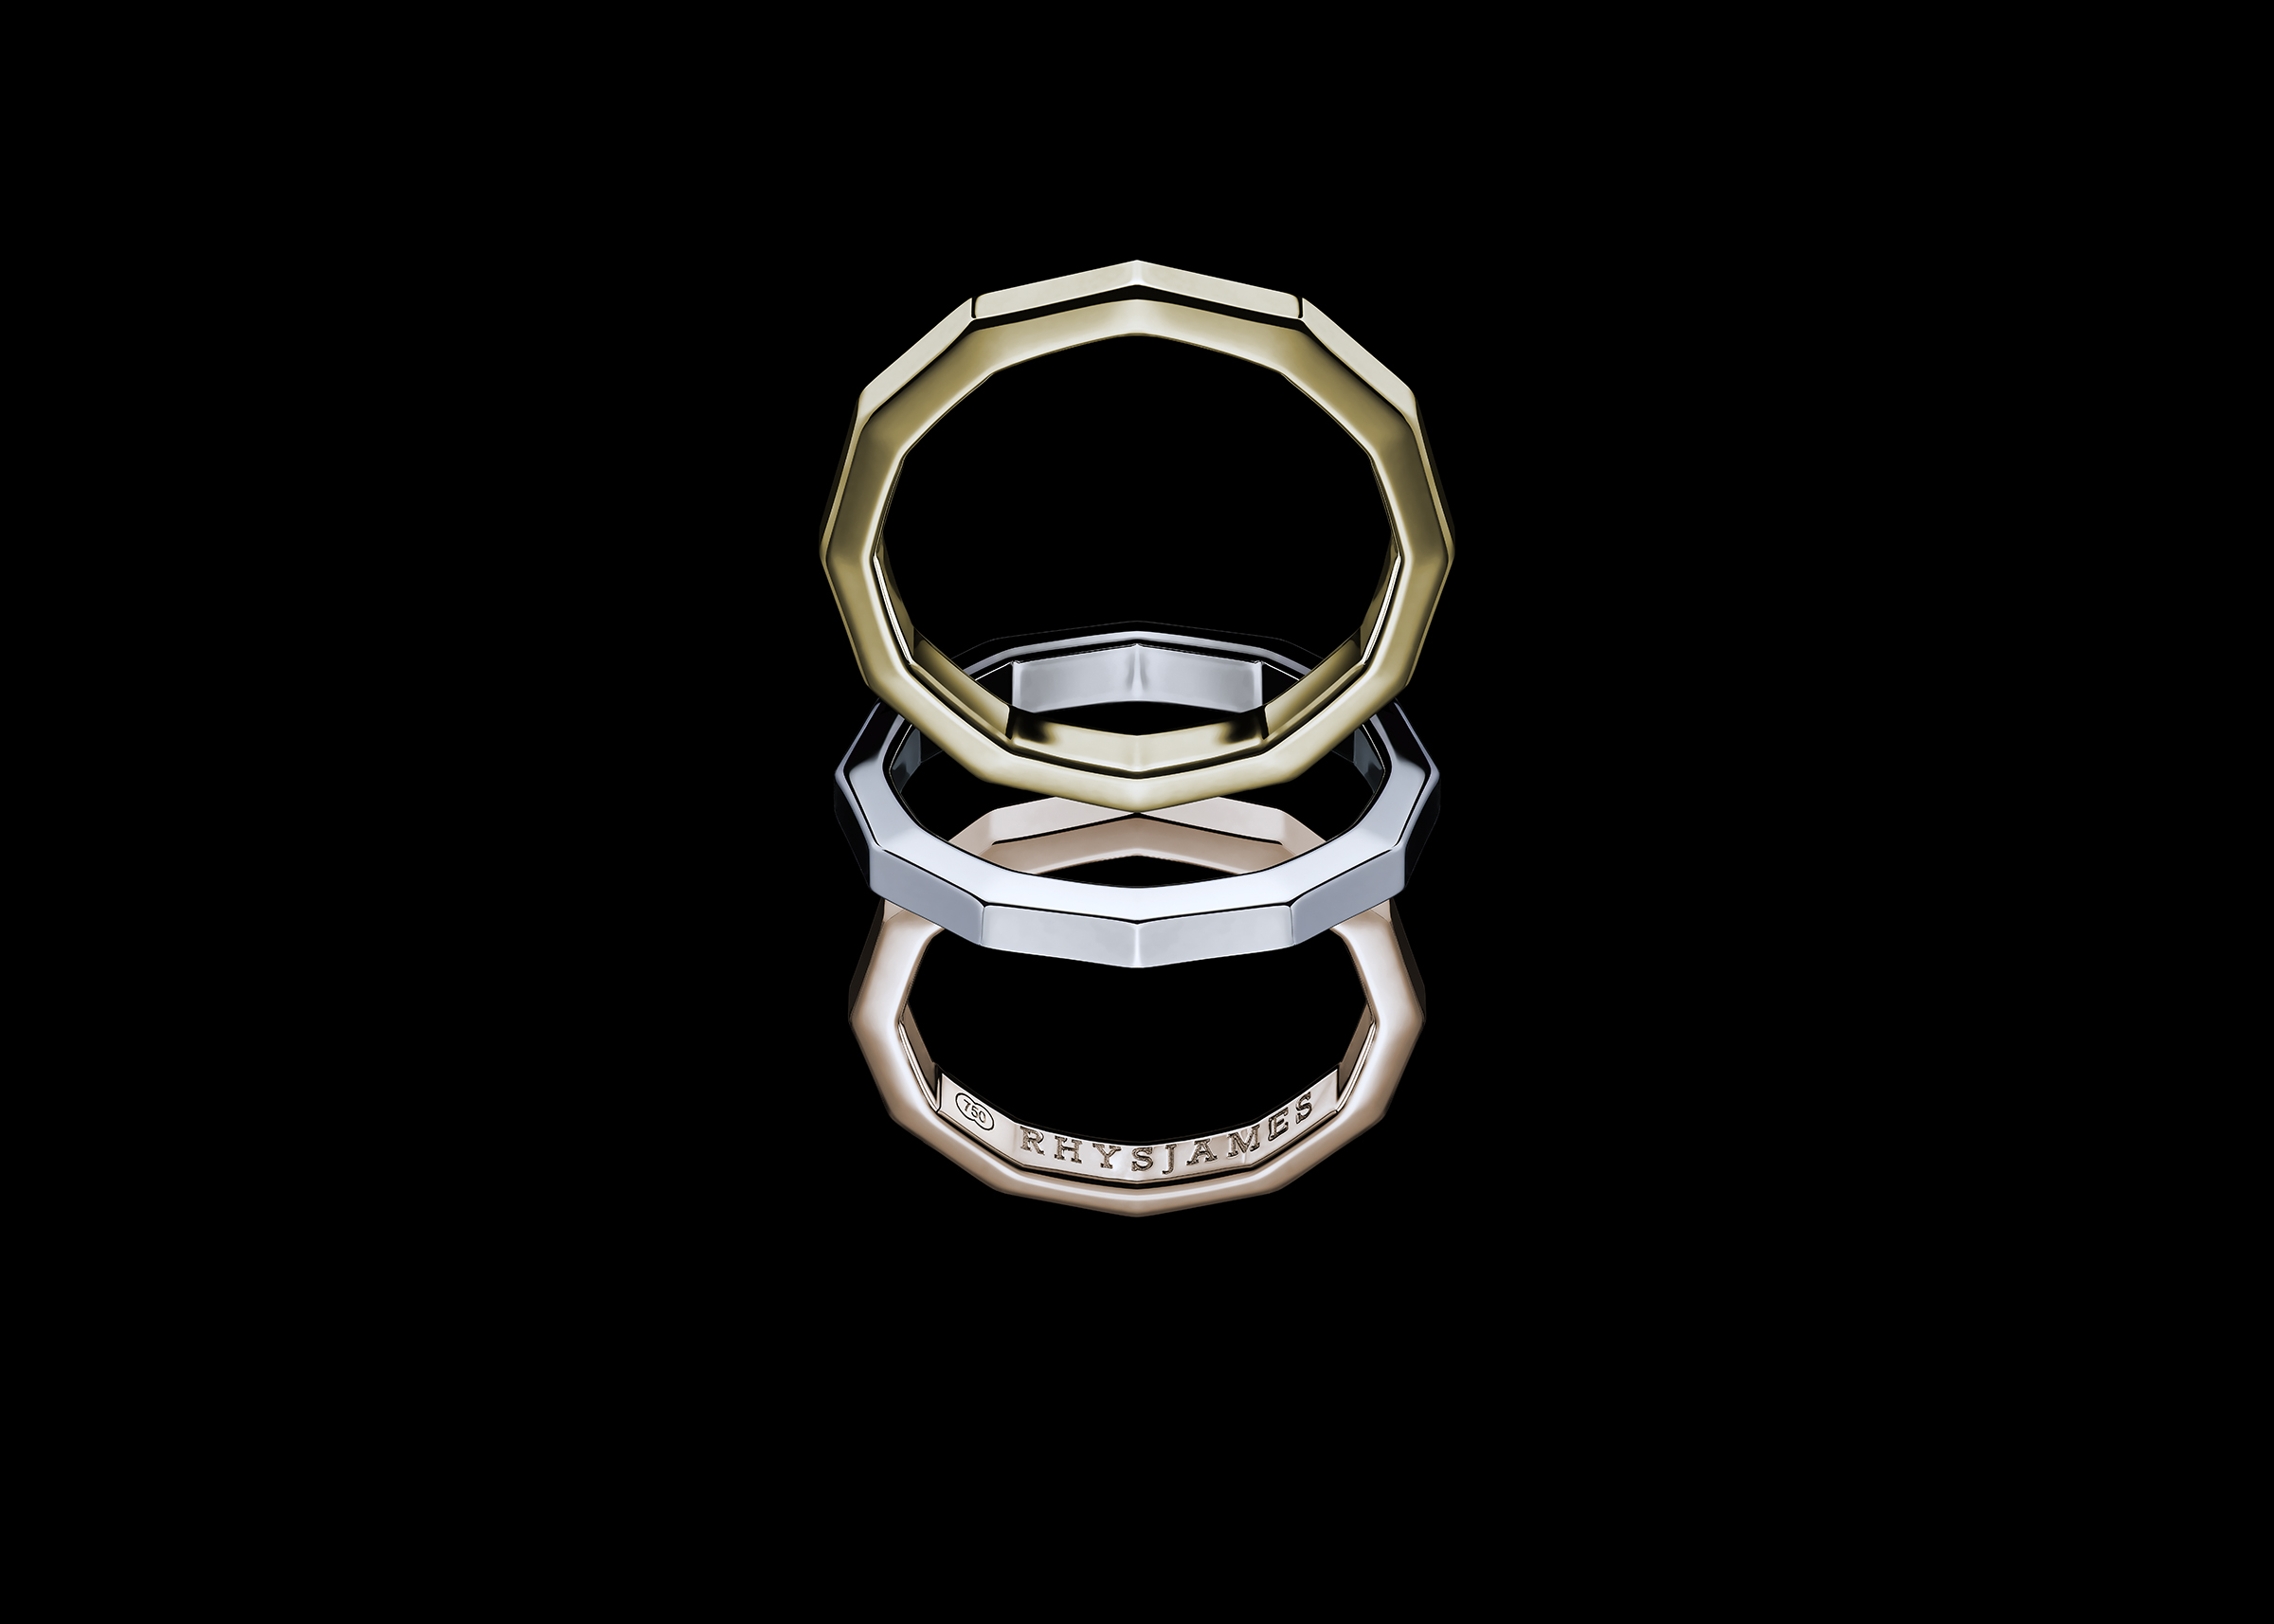 Voyager Rings in 18ct yellow, white and pink gold.